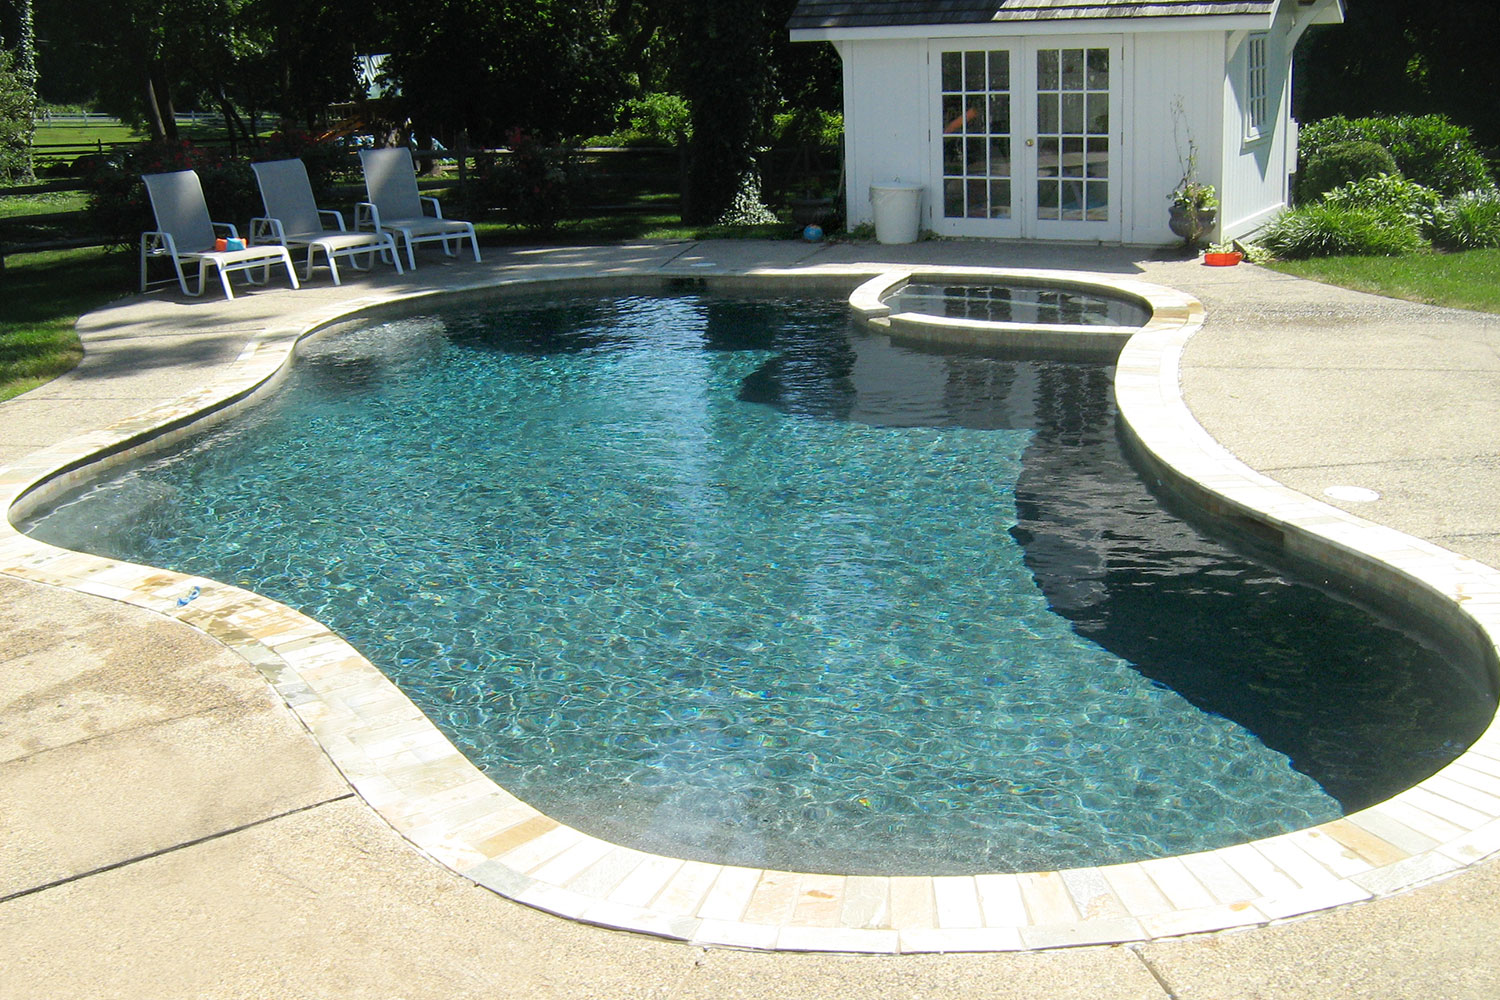 New Coping, Tile and Beautiful Pebble-Tec Interior Pebble Finish. Fully Automated Smart/Remote Pool/Spa Control System